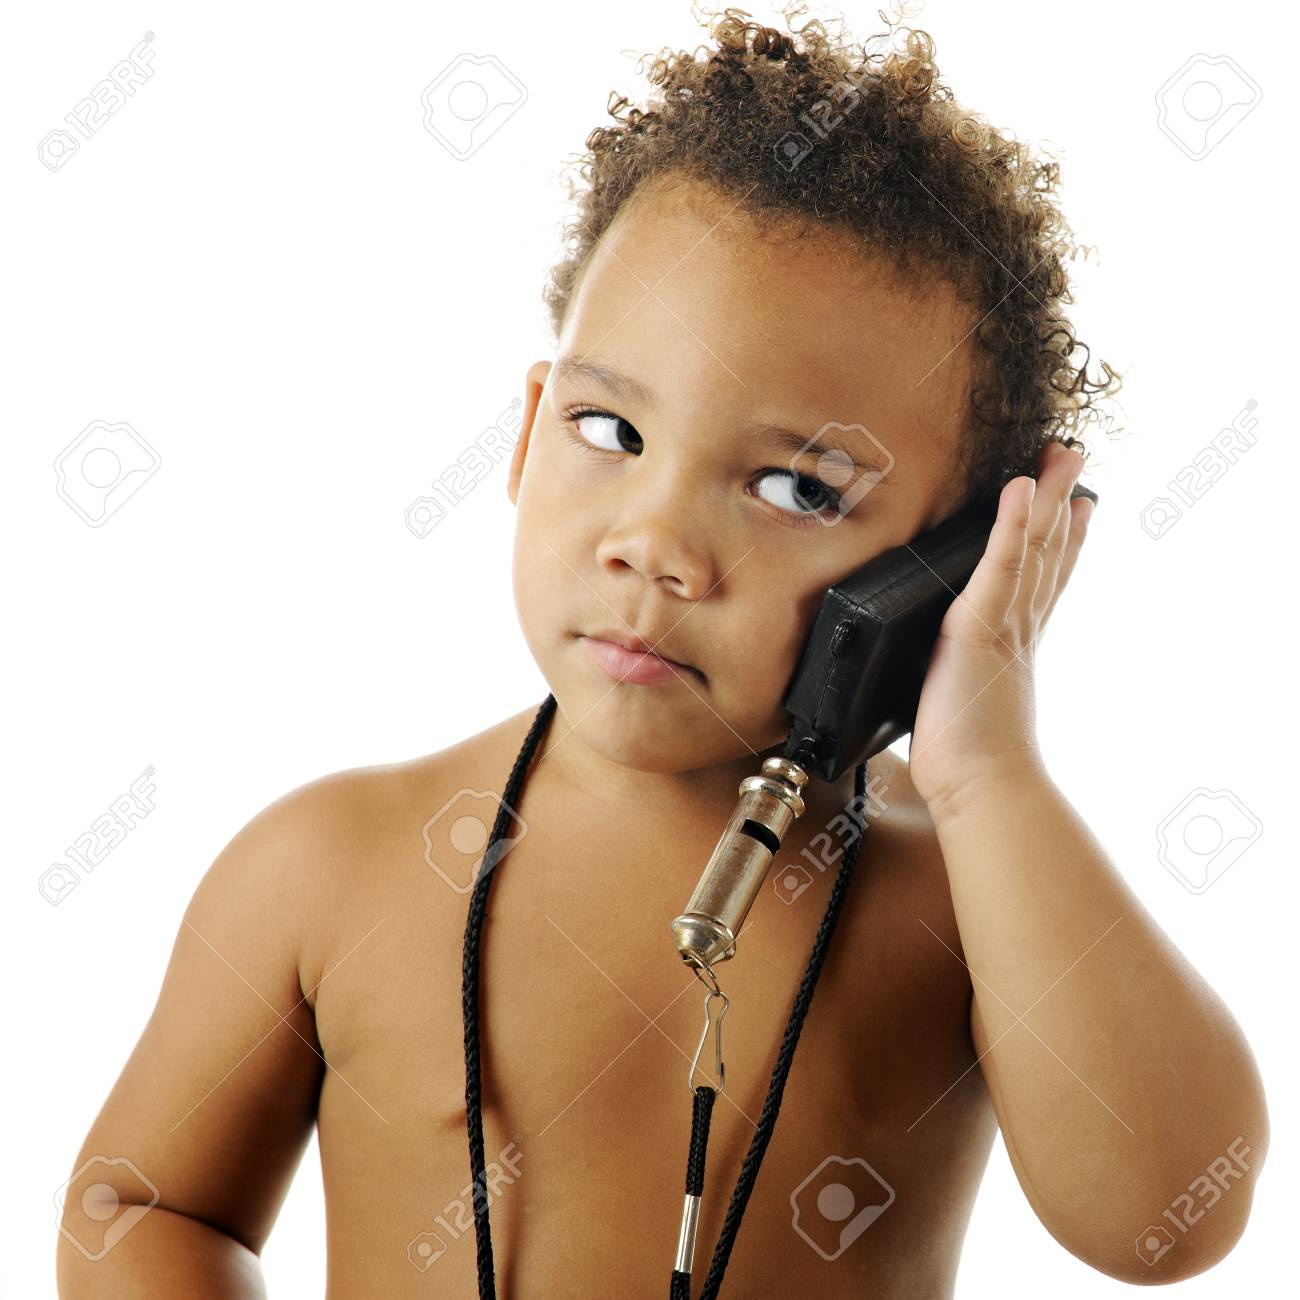 Close-up of an adoreable, bare-chested preschooler listening to a toy (not a phone) that he's pretending to be a phone.  On a white background. Stock Photo - 16366790